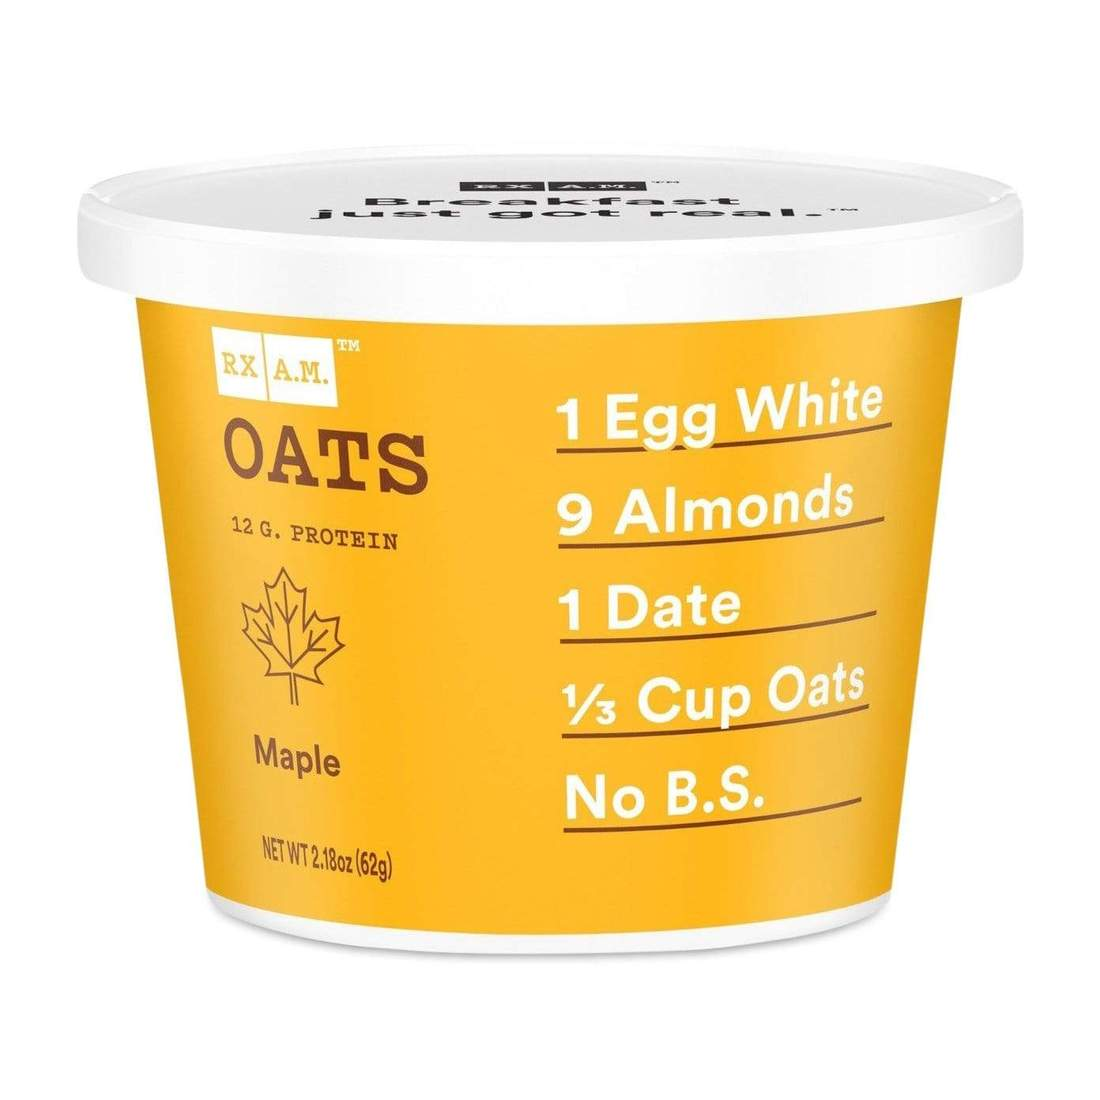 RX AM Oats